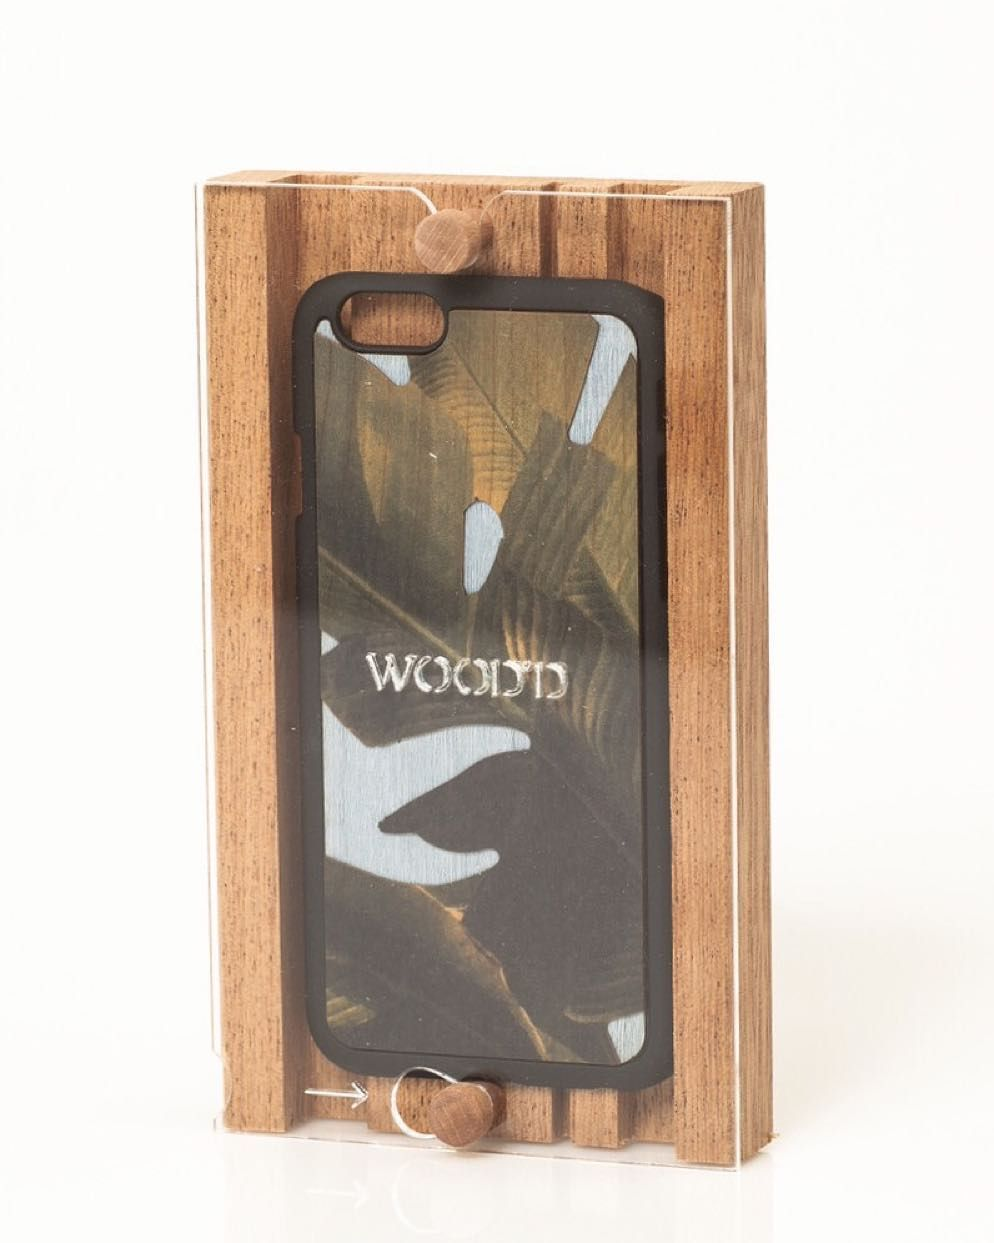 When the packaging becomes a products itself. Did you know our wooden pack once open it can be used as an iPhone stander? #Woodd #Packaging #Design #Brand